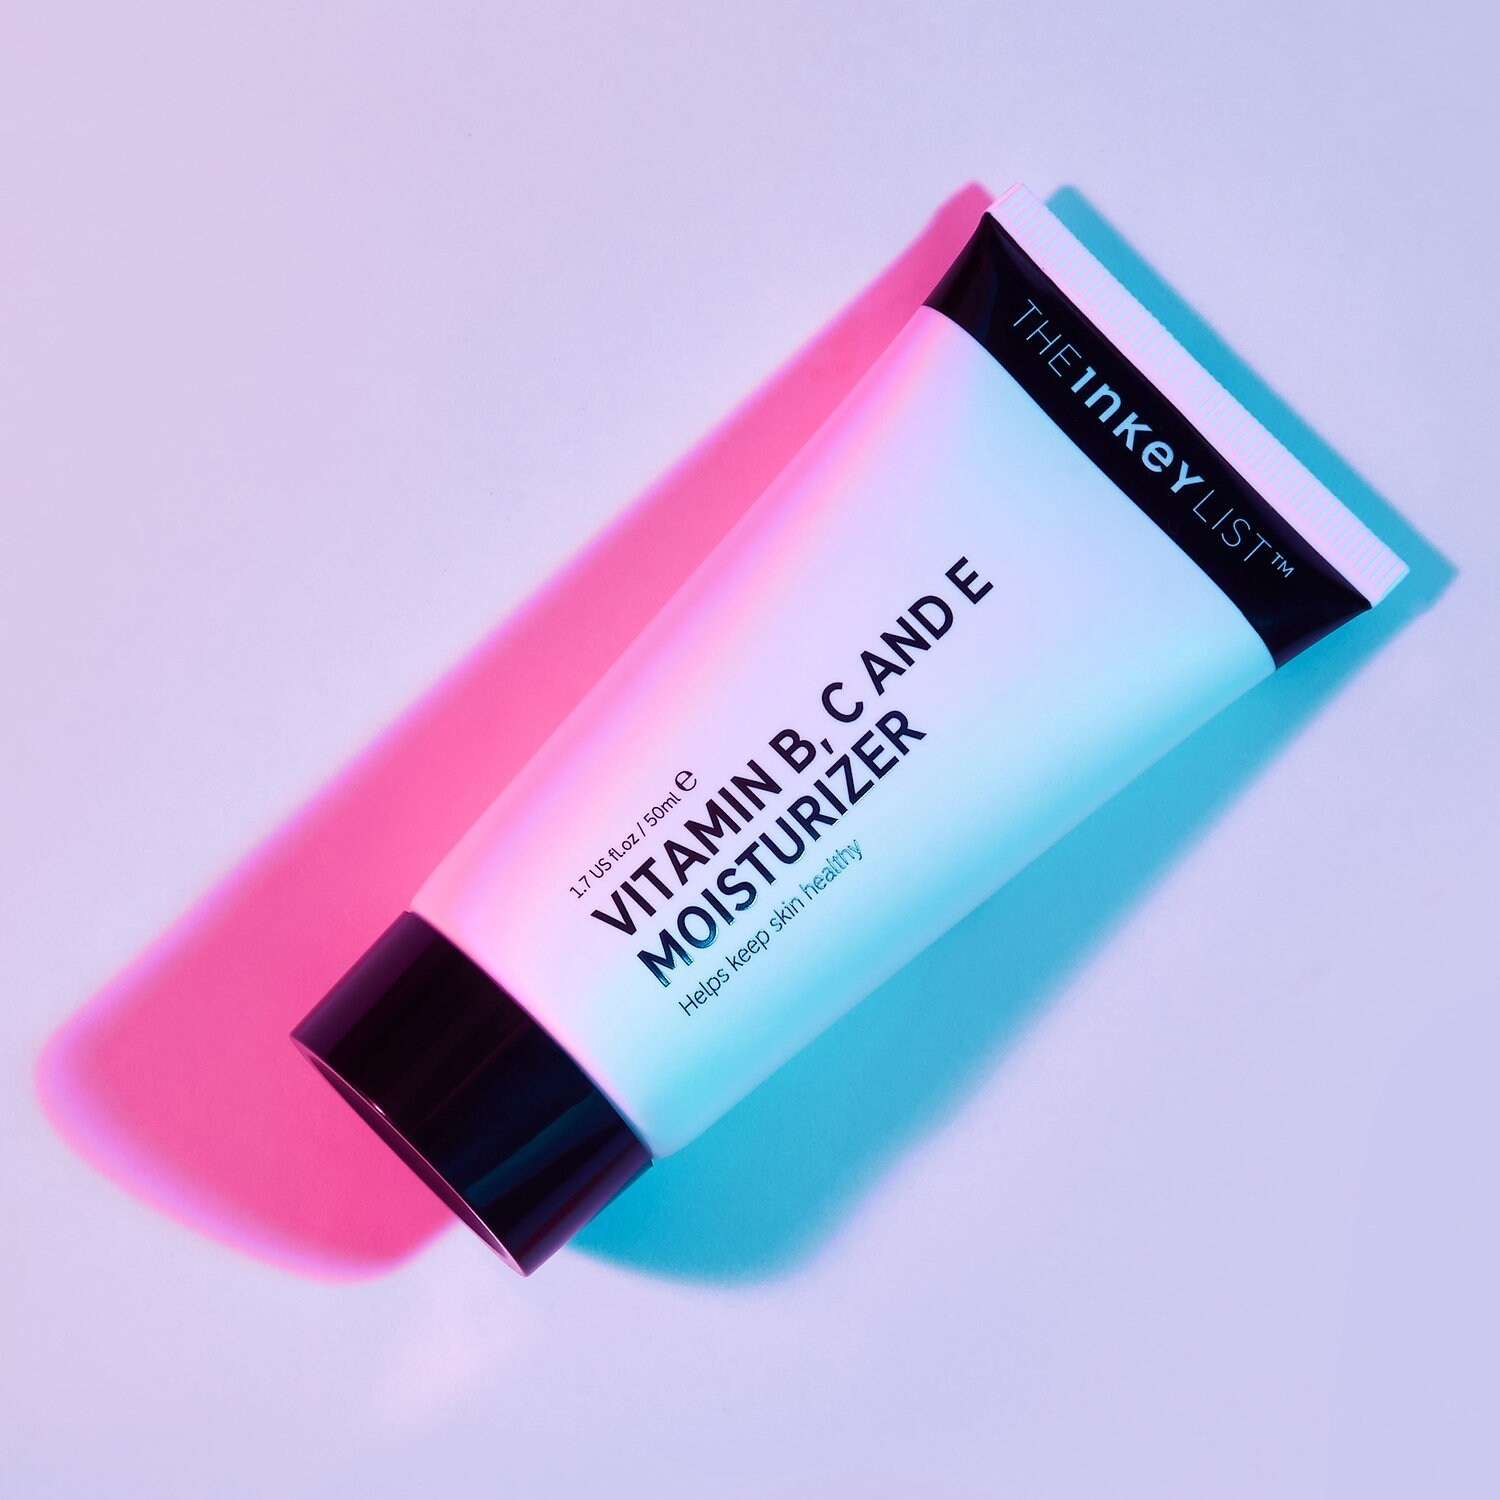 The tube of product